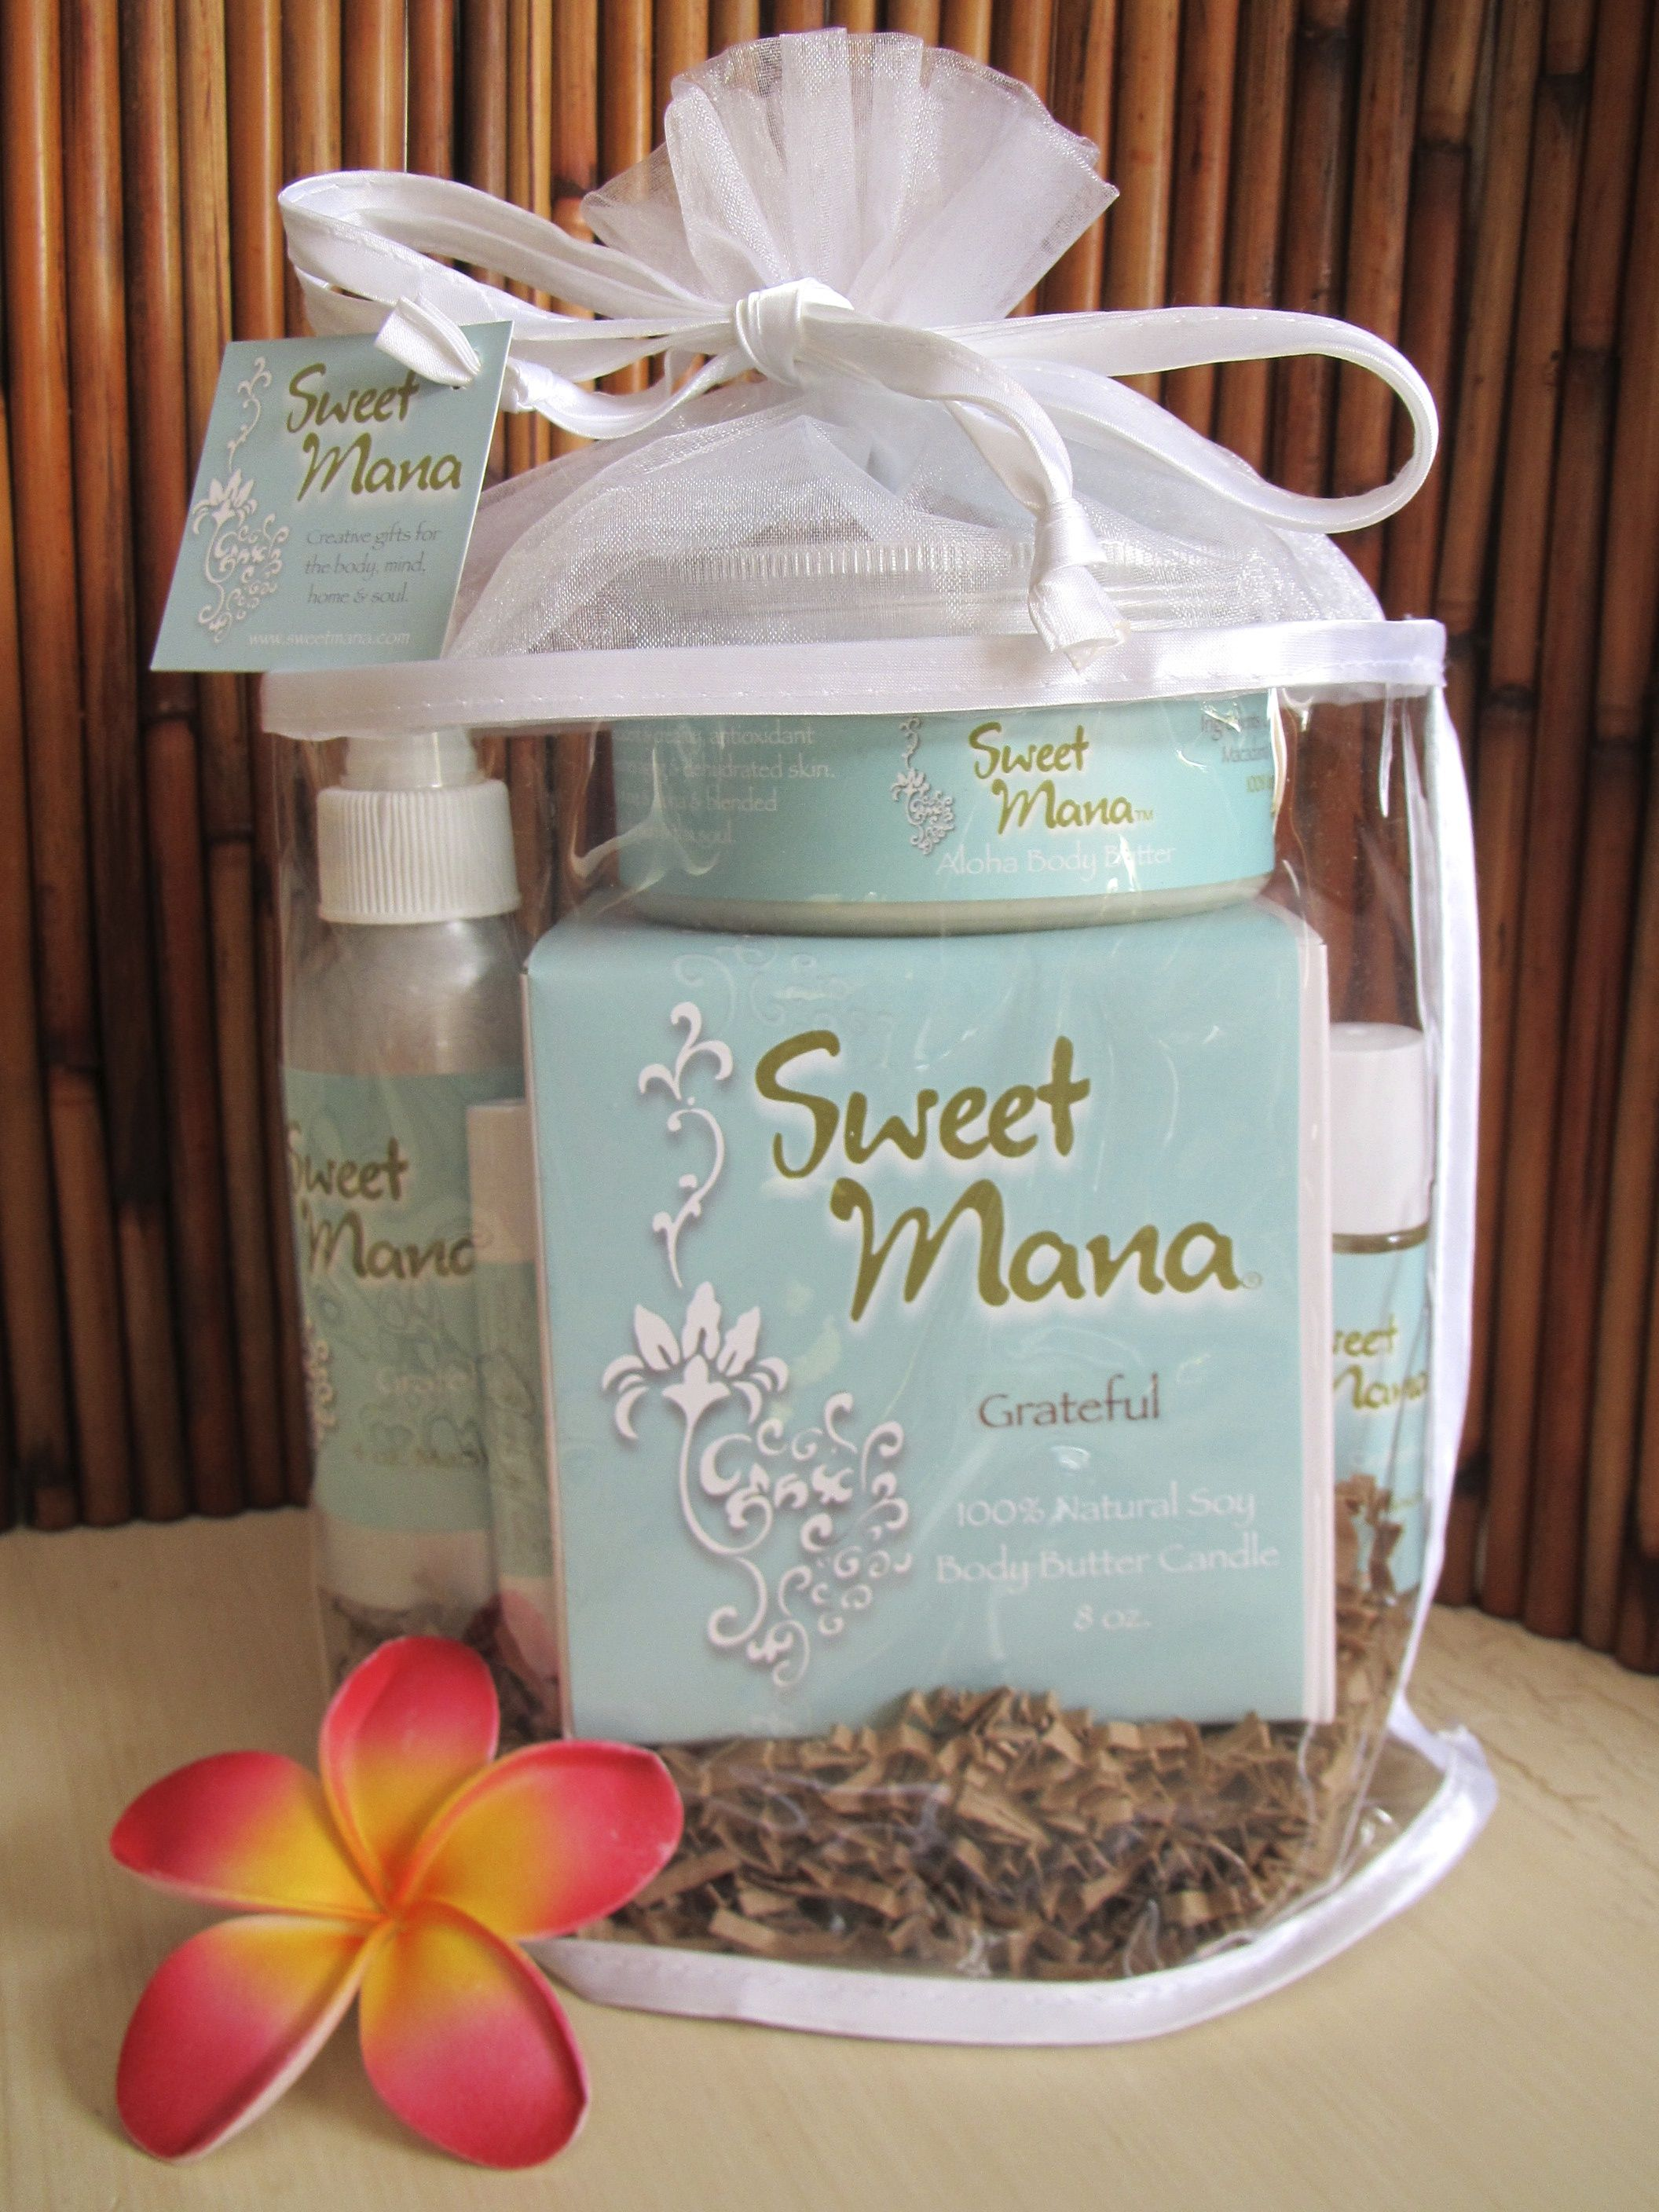 A lovely assortment of eco-friendly body products that nourish skin & smell OMazing! www.sweetmana.com